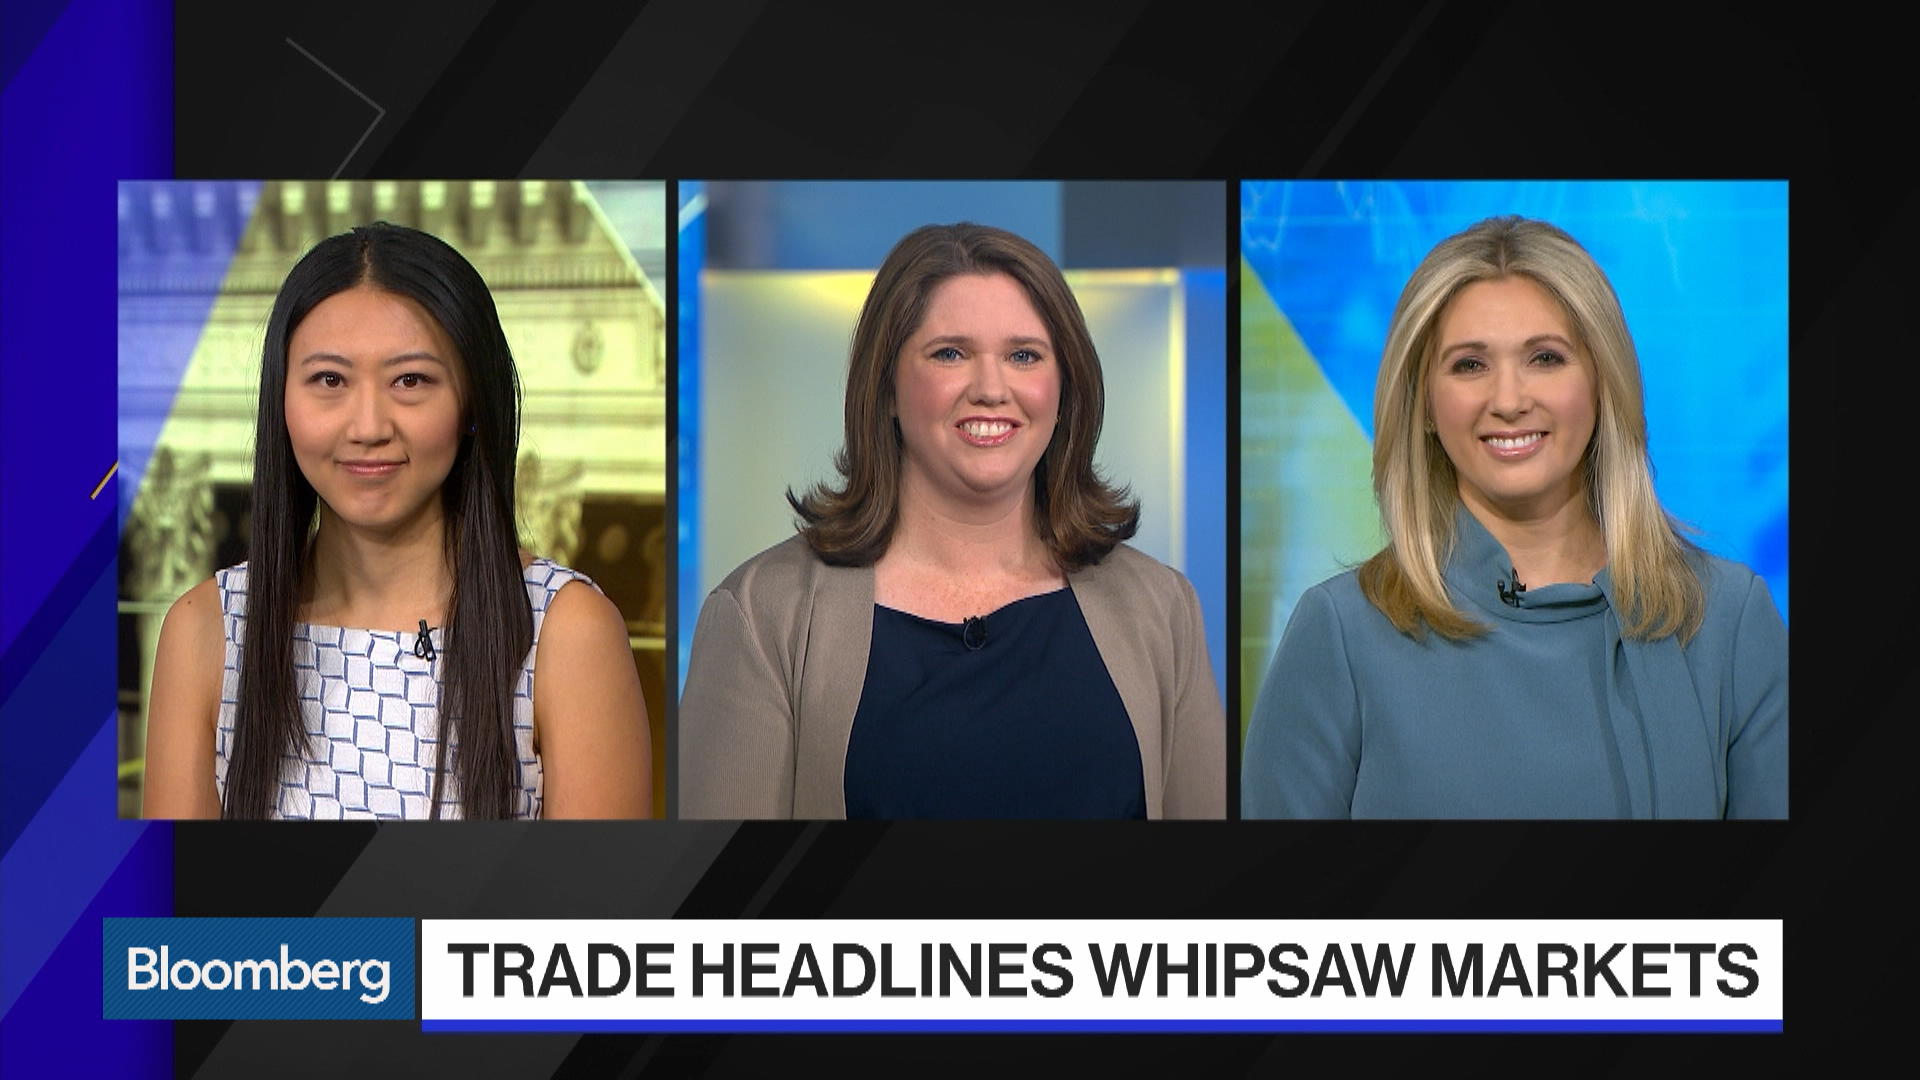 Trade Headlines Whipsaw Markets